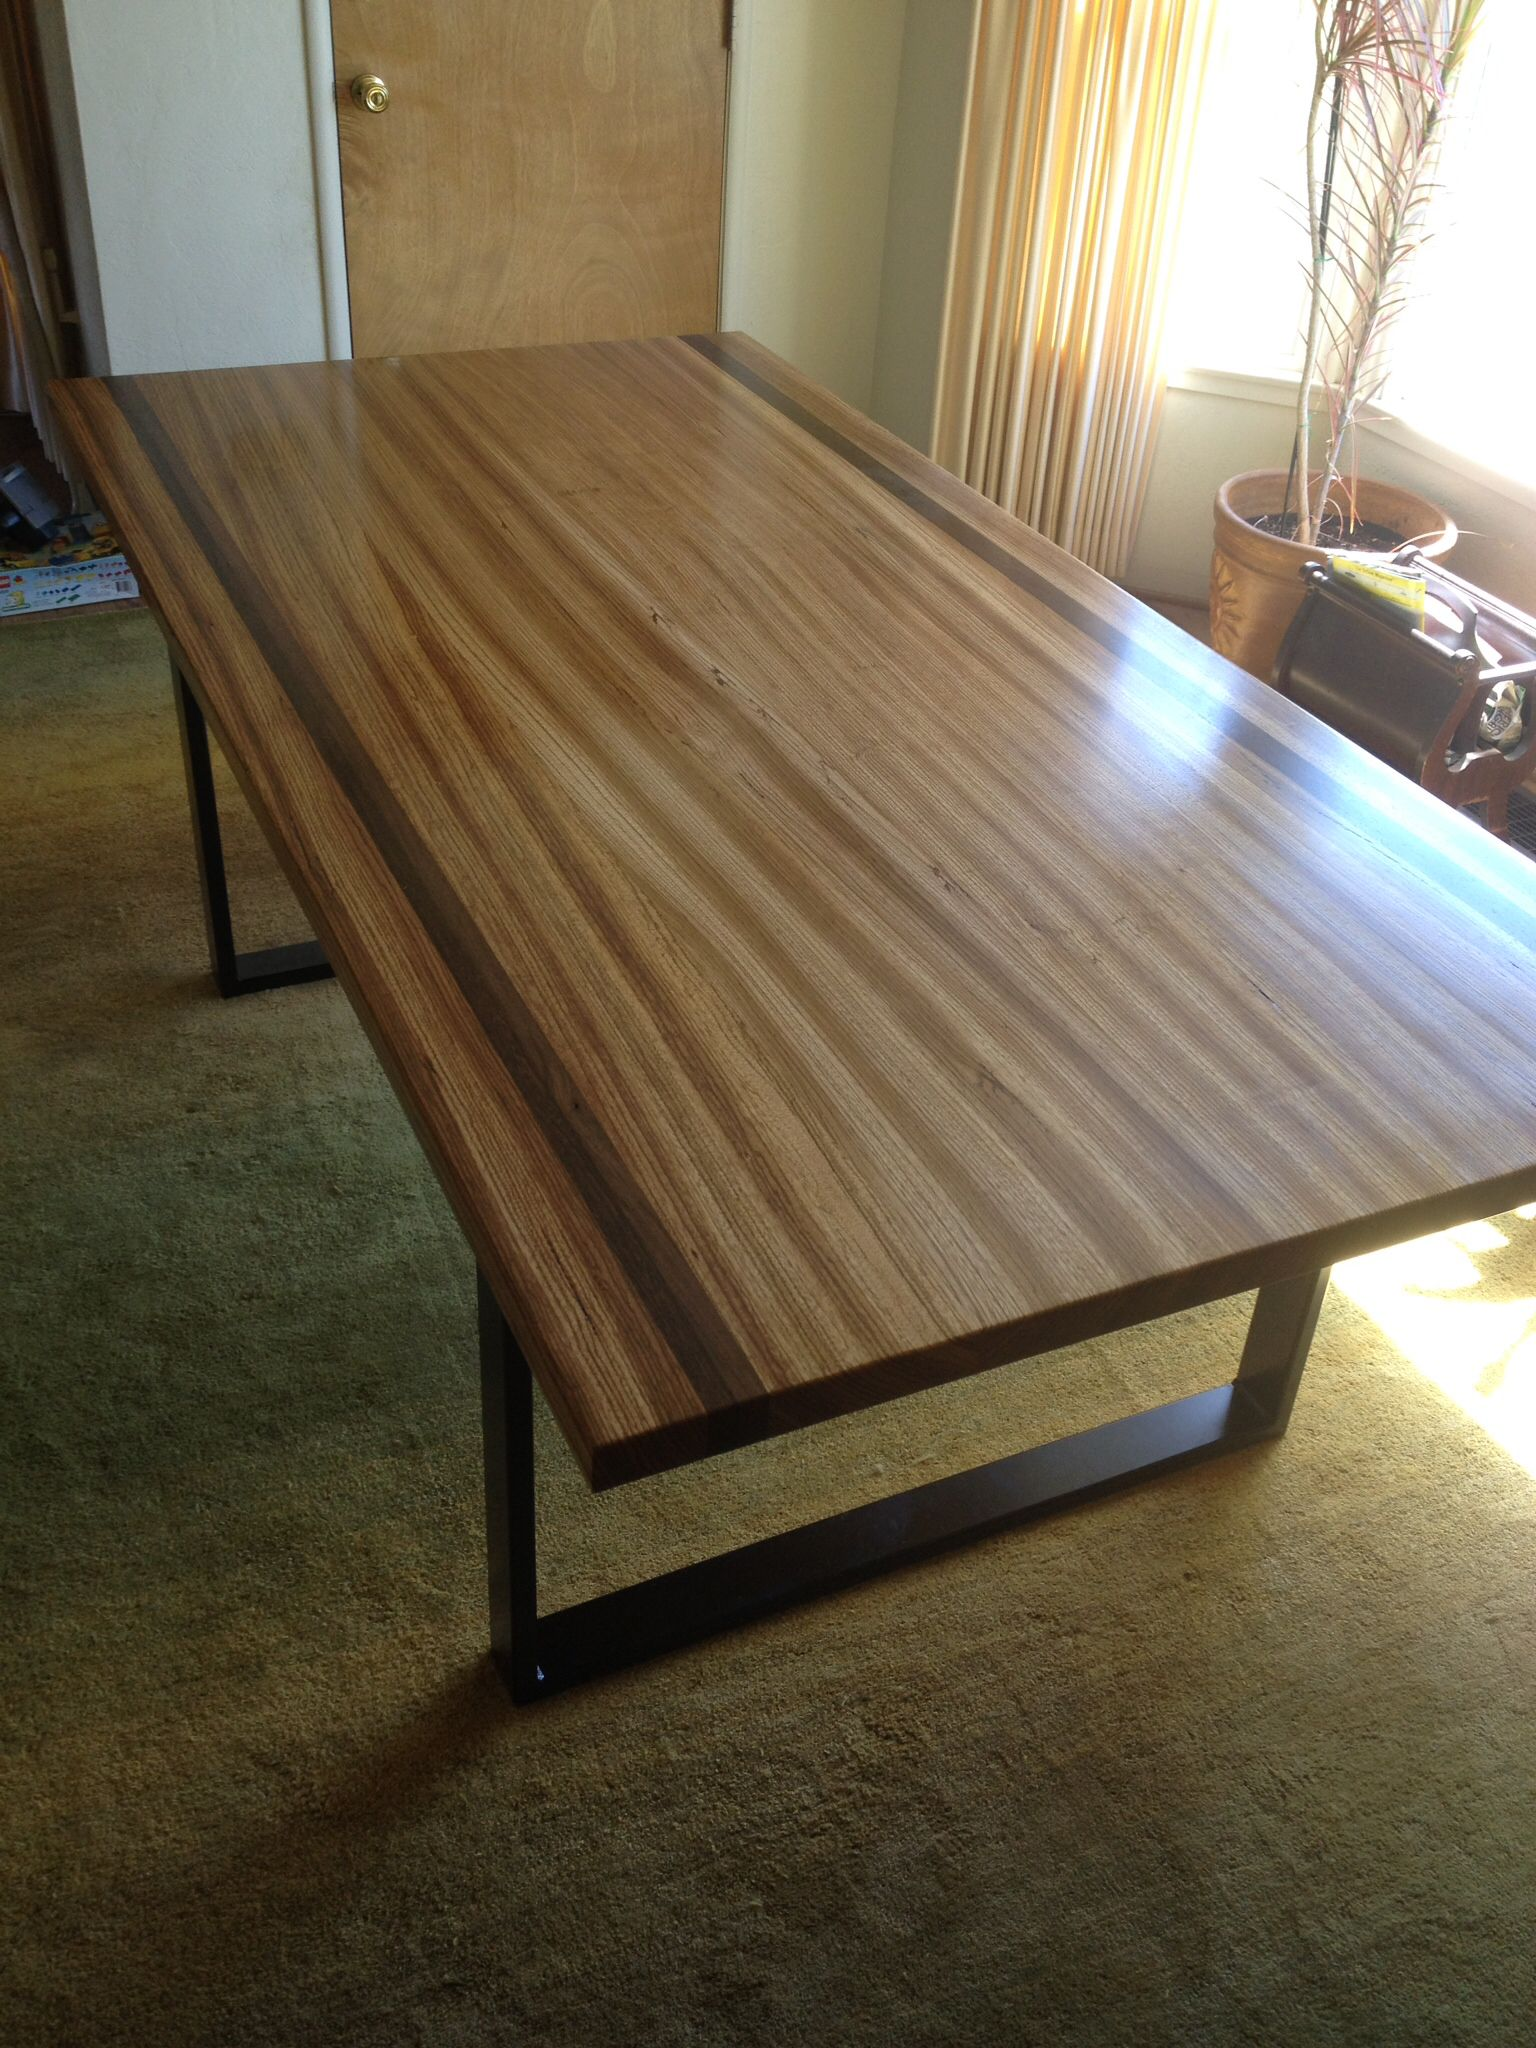 Zebra Wood And Wenge Wood Table With Flat Black Steel Legs